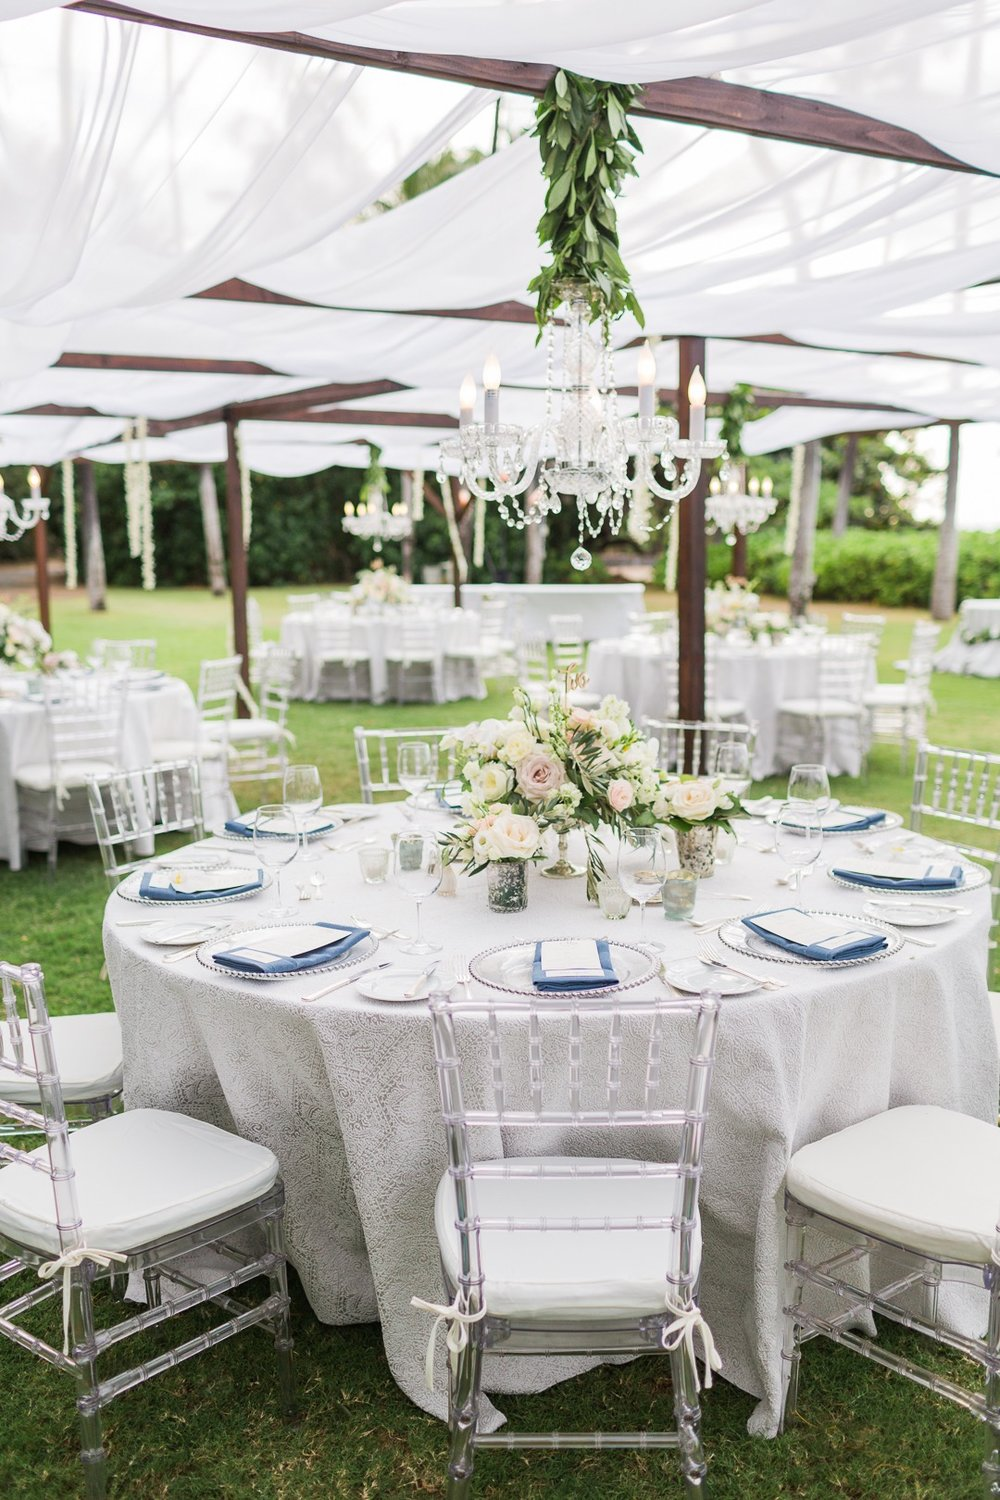 Clear Chiavari chairs with ivory cushions, silver beaded rim chargers, dark wood structure with sheer white fabric, and chandeliers.  Decor and design by Bliss In Bloom.  Photo by Fletch Photography.